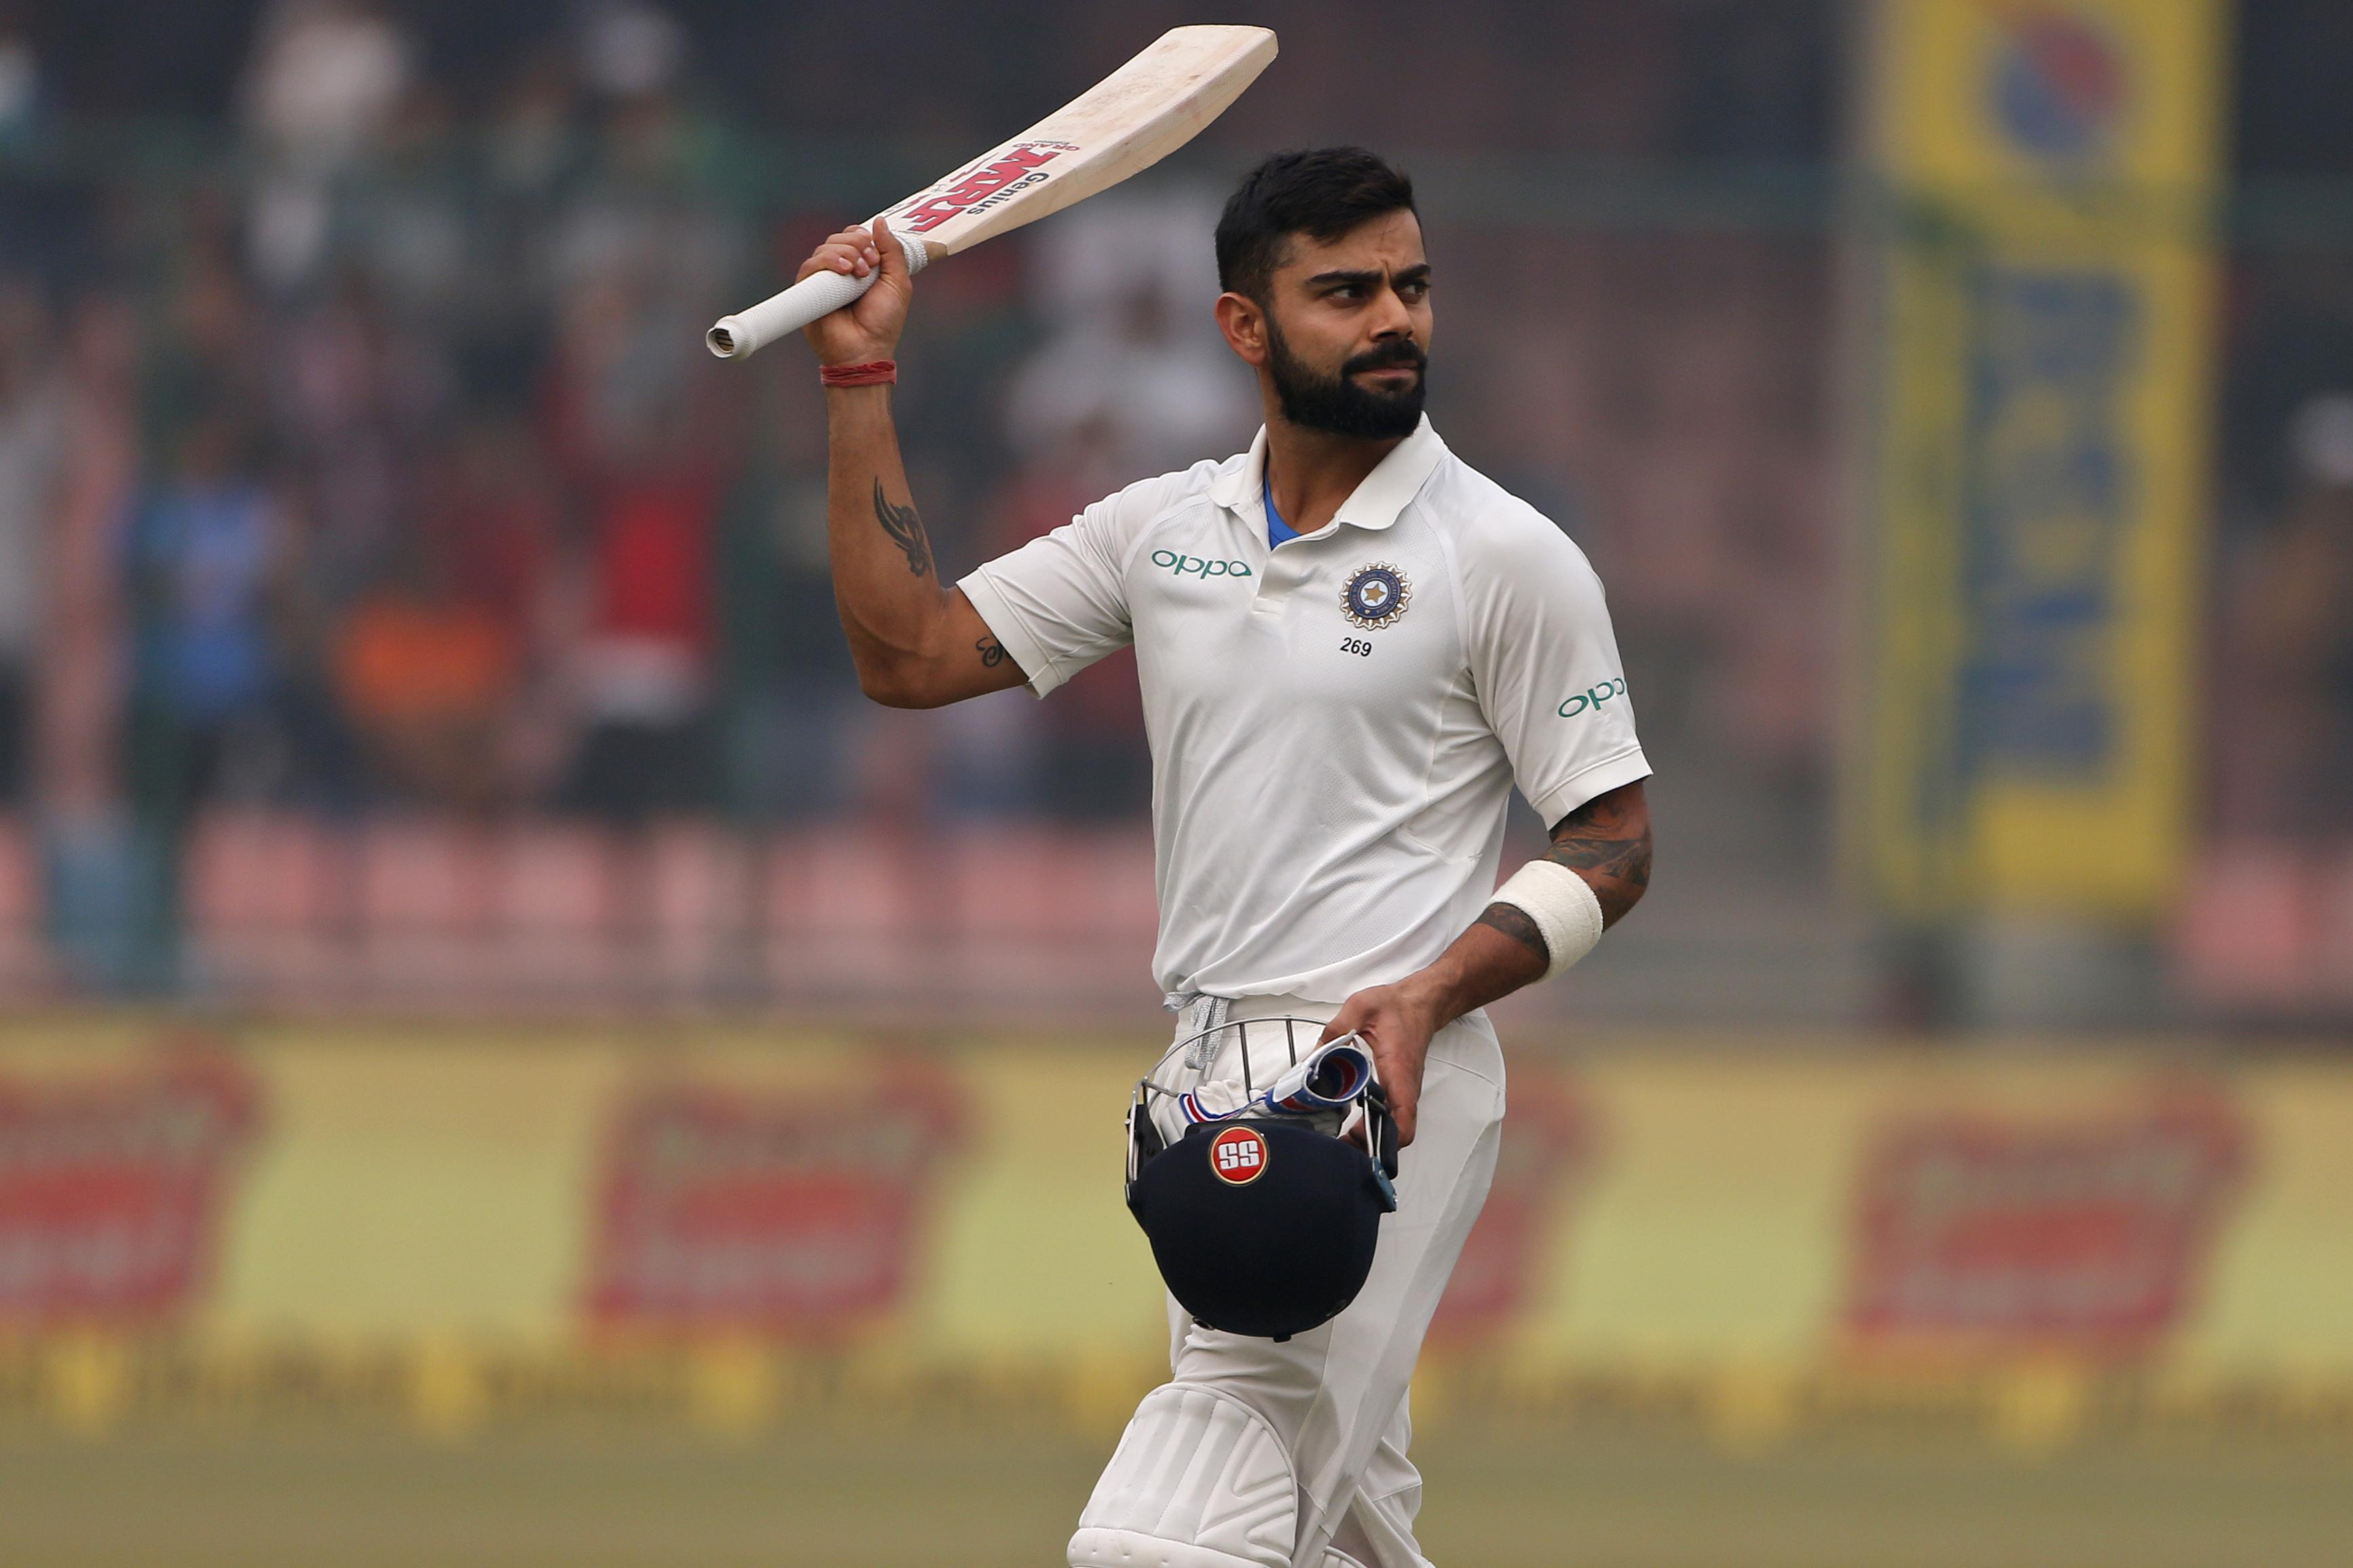 India superstar Virat Kohli will now not play for Surrey this summer